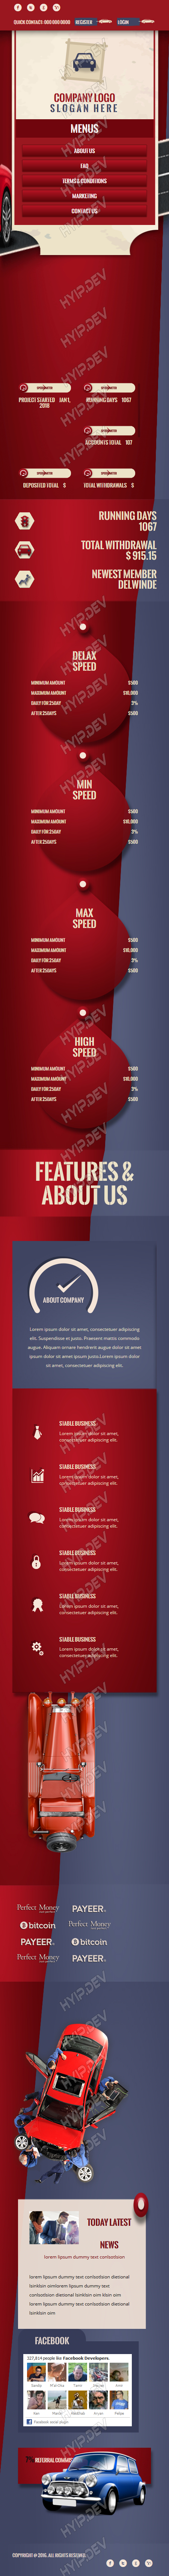 goldcoders hyip template no. 134, responsive page screenshot